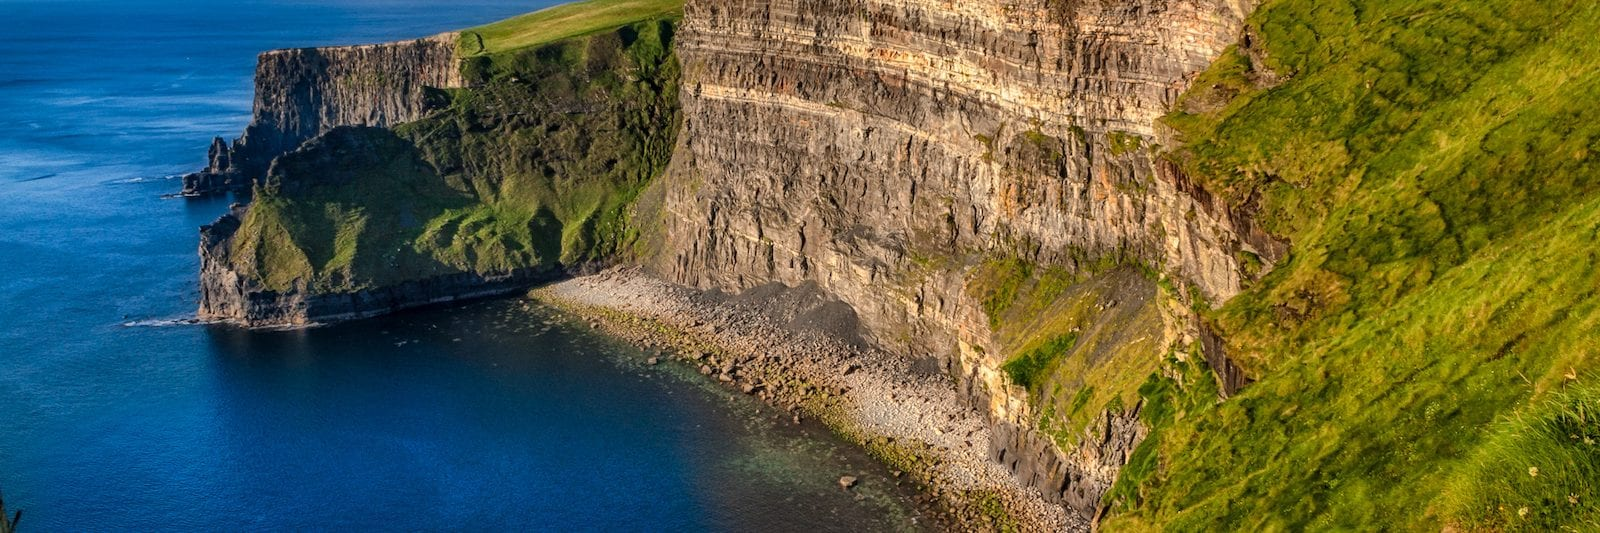 Cliffs by the Cliffs of Moher, Ireland